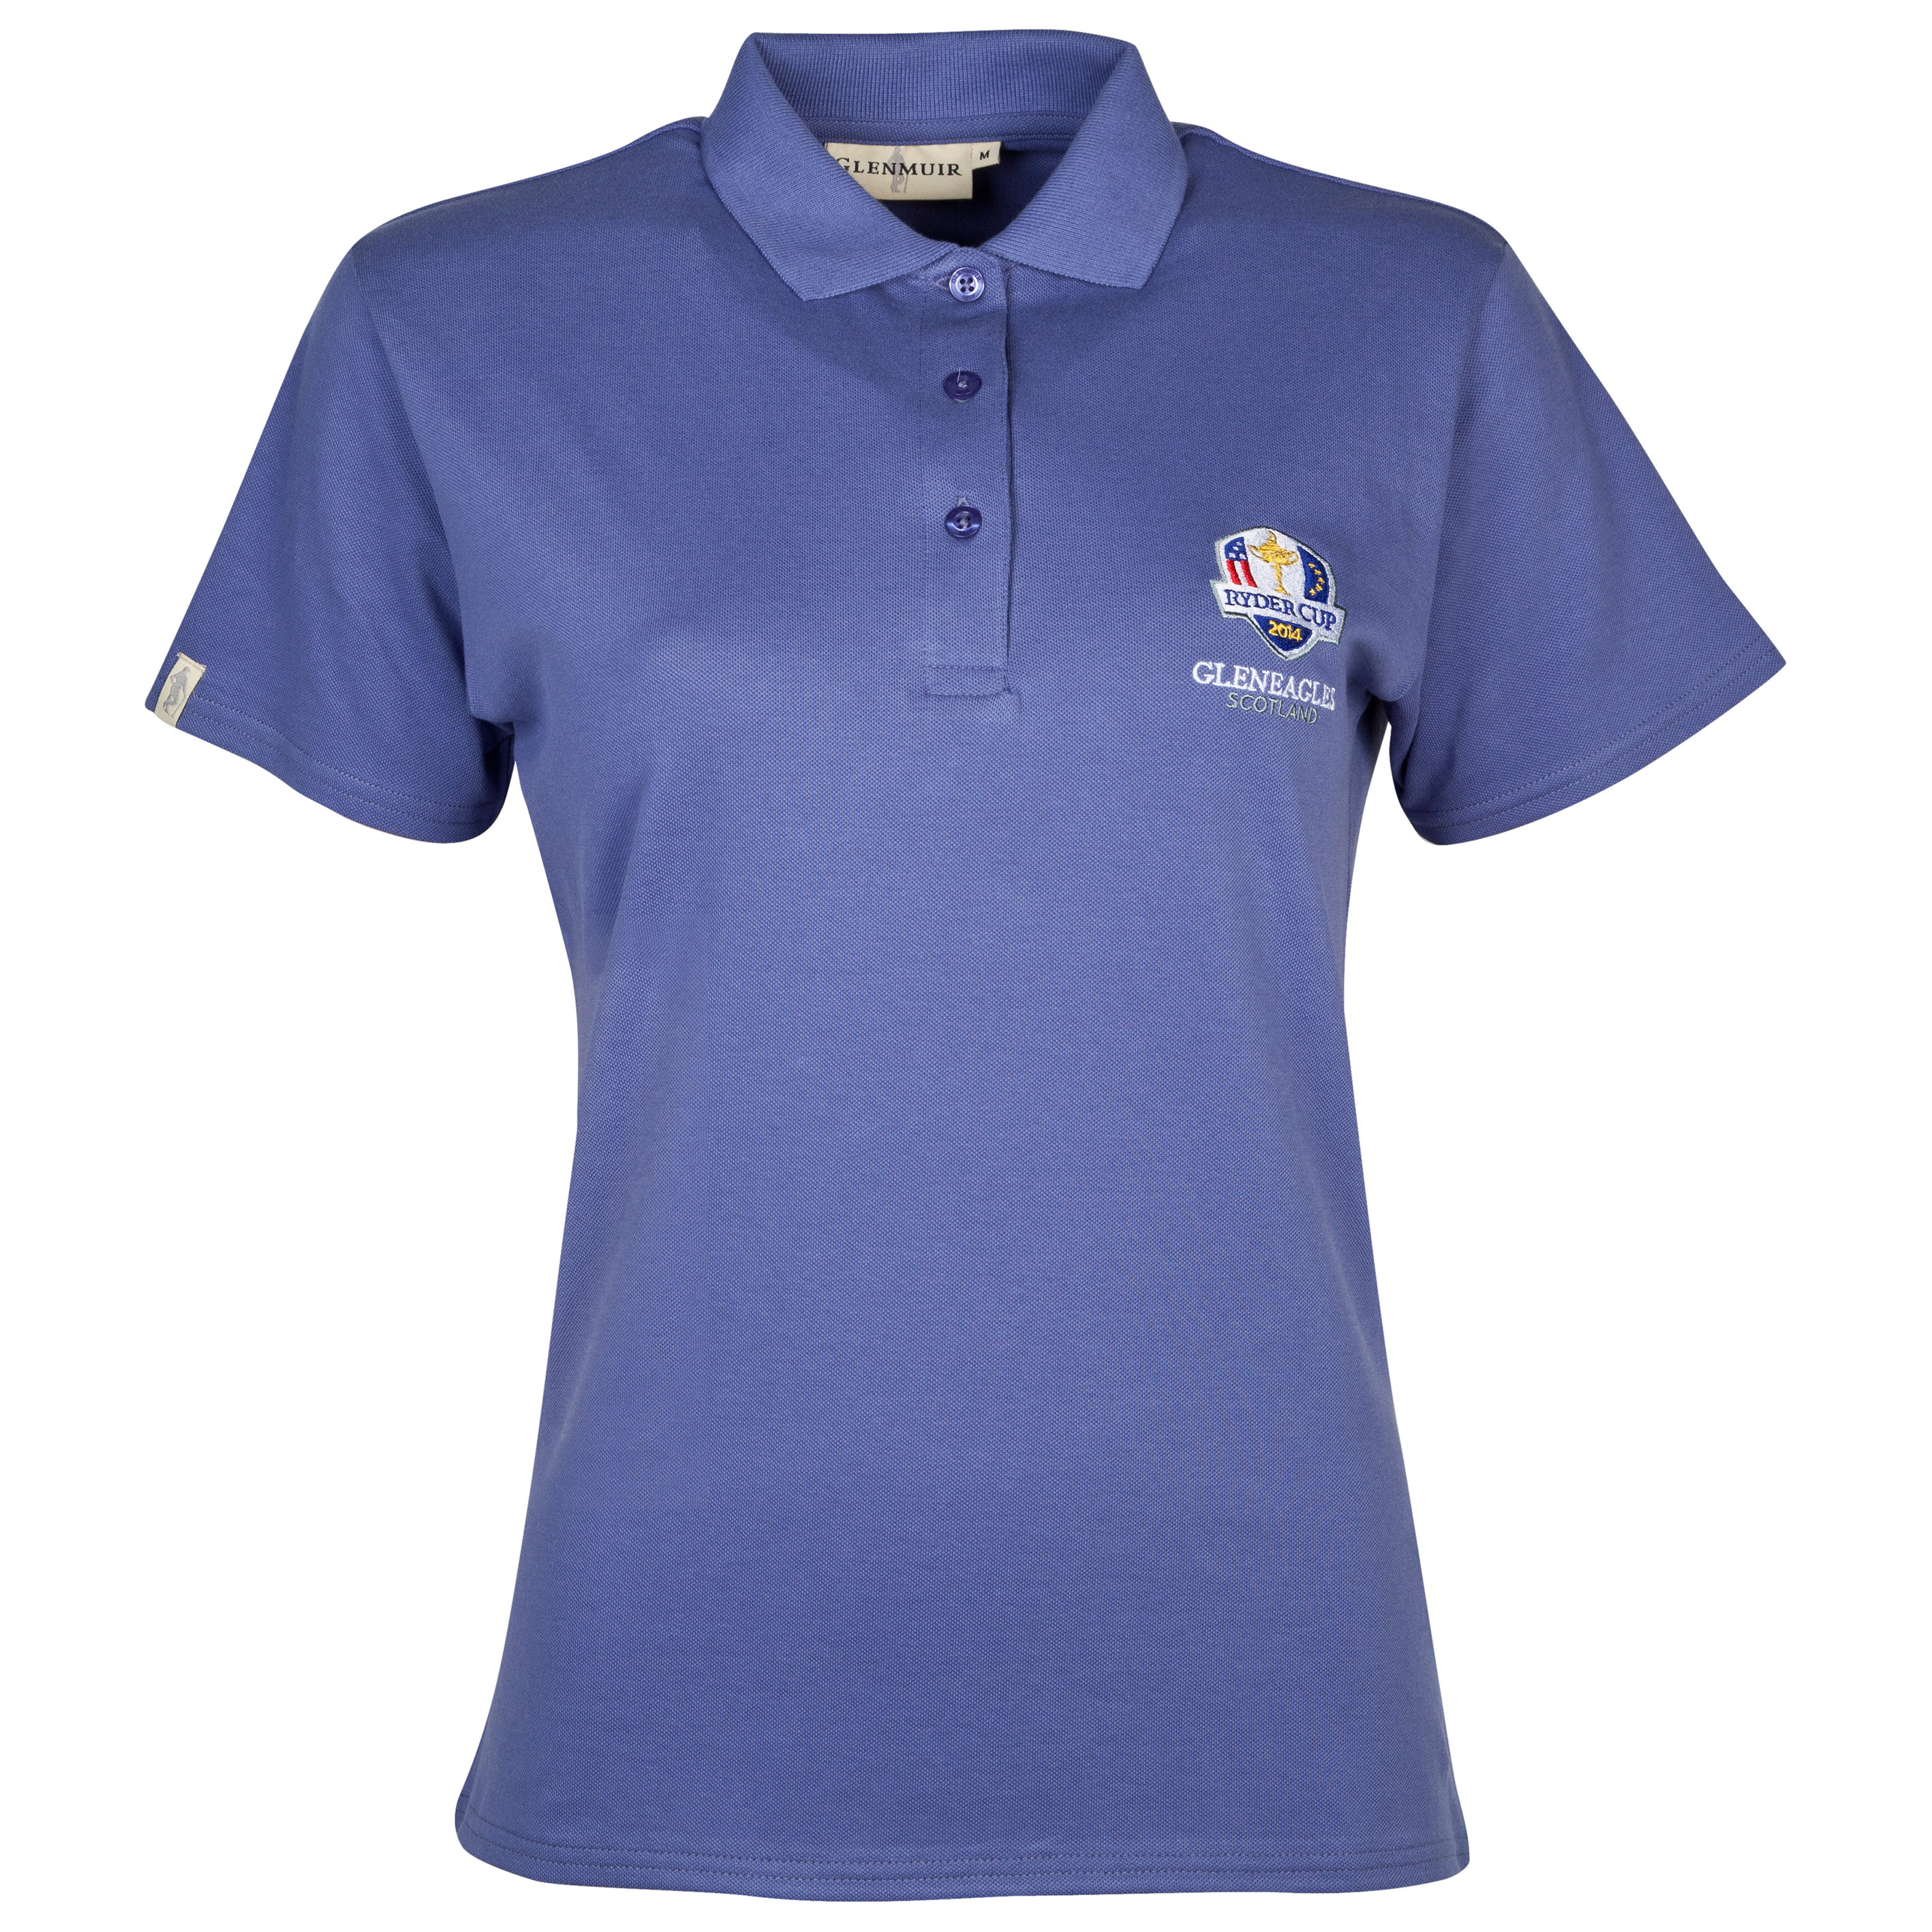 The 2014 Ryder Cup Glenmuir Sophie Womens Polo - Iris